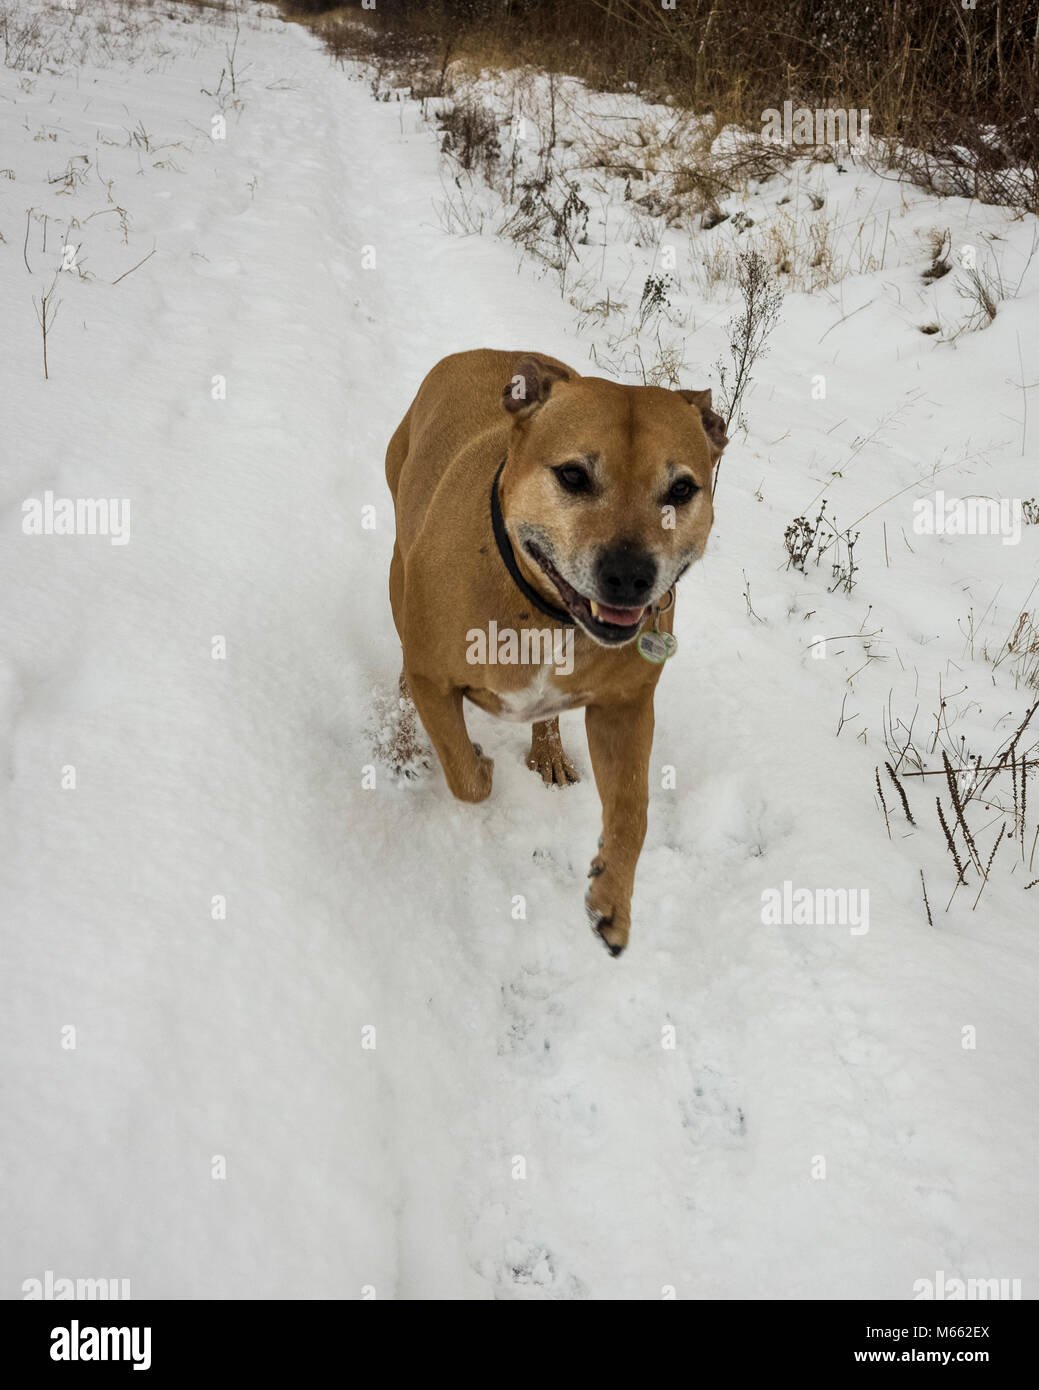 Ipswich, England. 28th February 2018. an old Staffordshire Bull Terrier pet dog, SBT, enjoying the snow in the cold - Stock Image